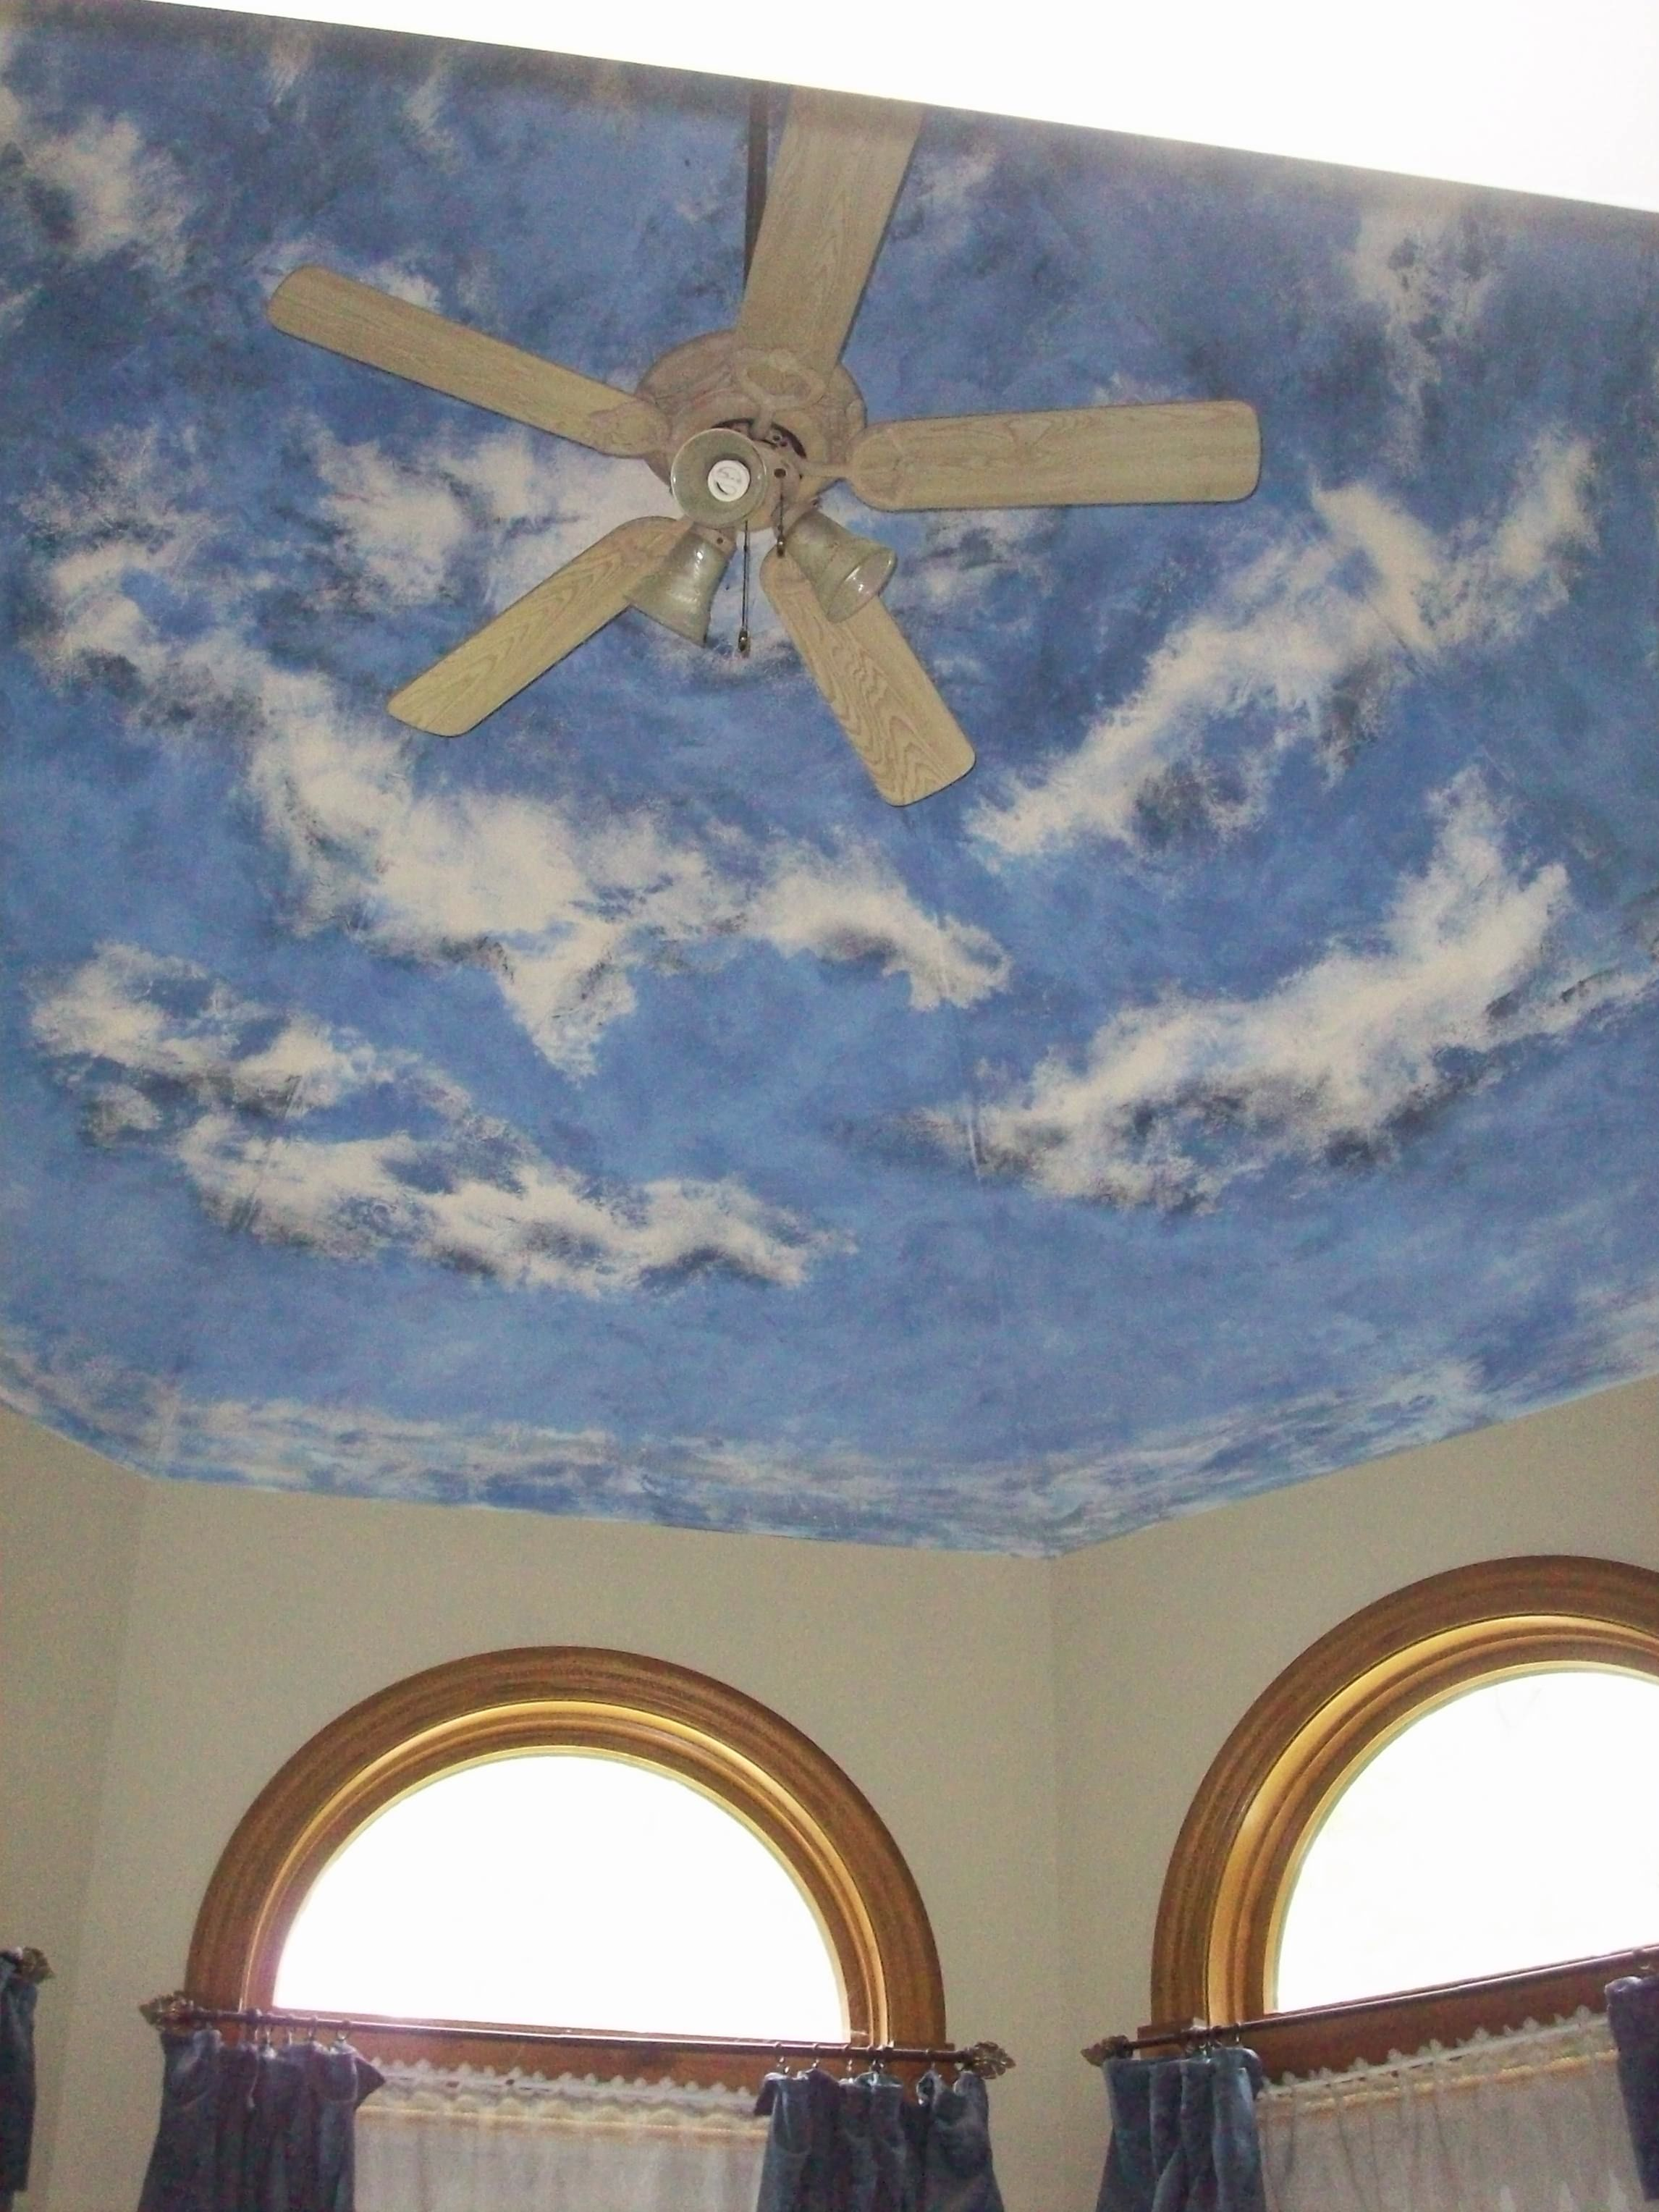 Painted ceiling turret. Bringing the outdoors in!